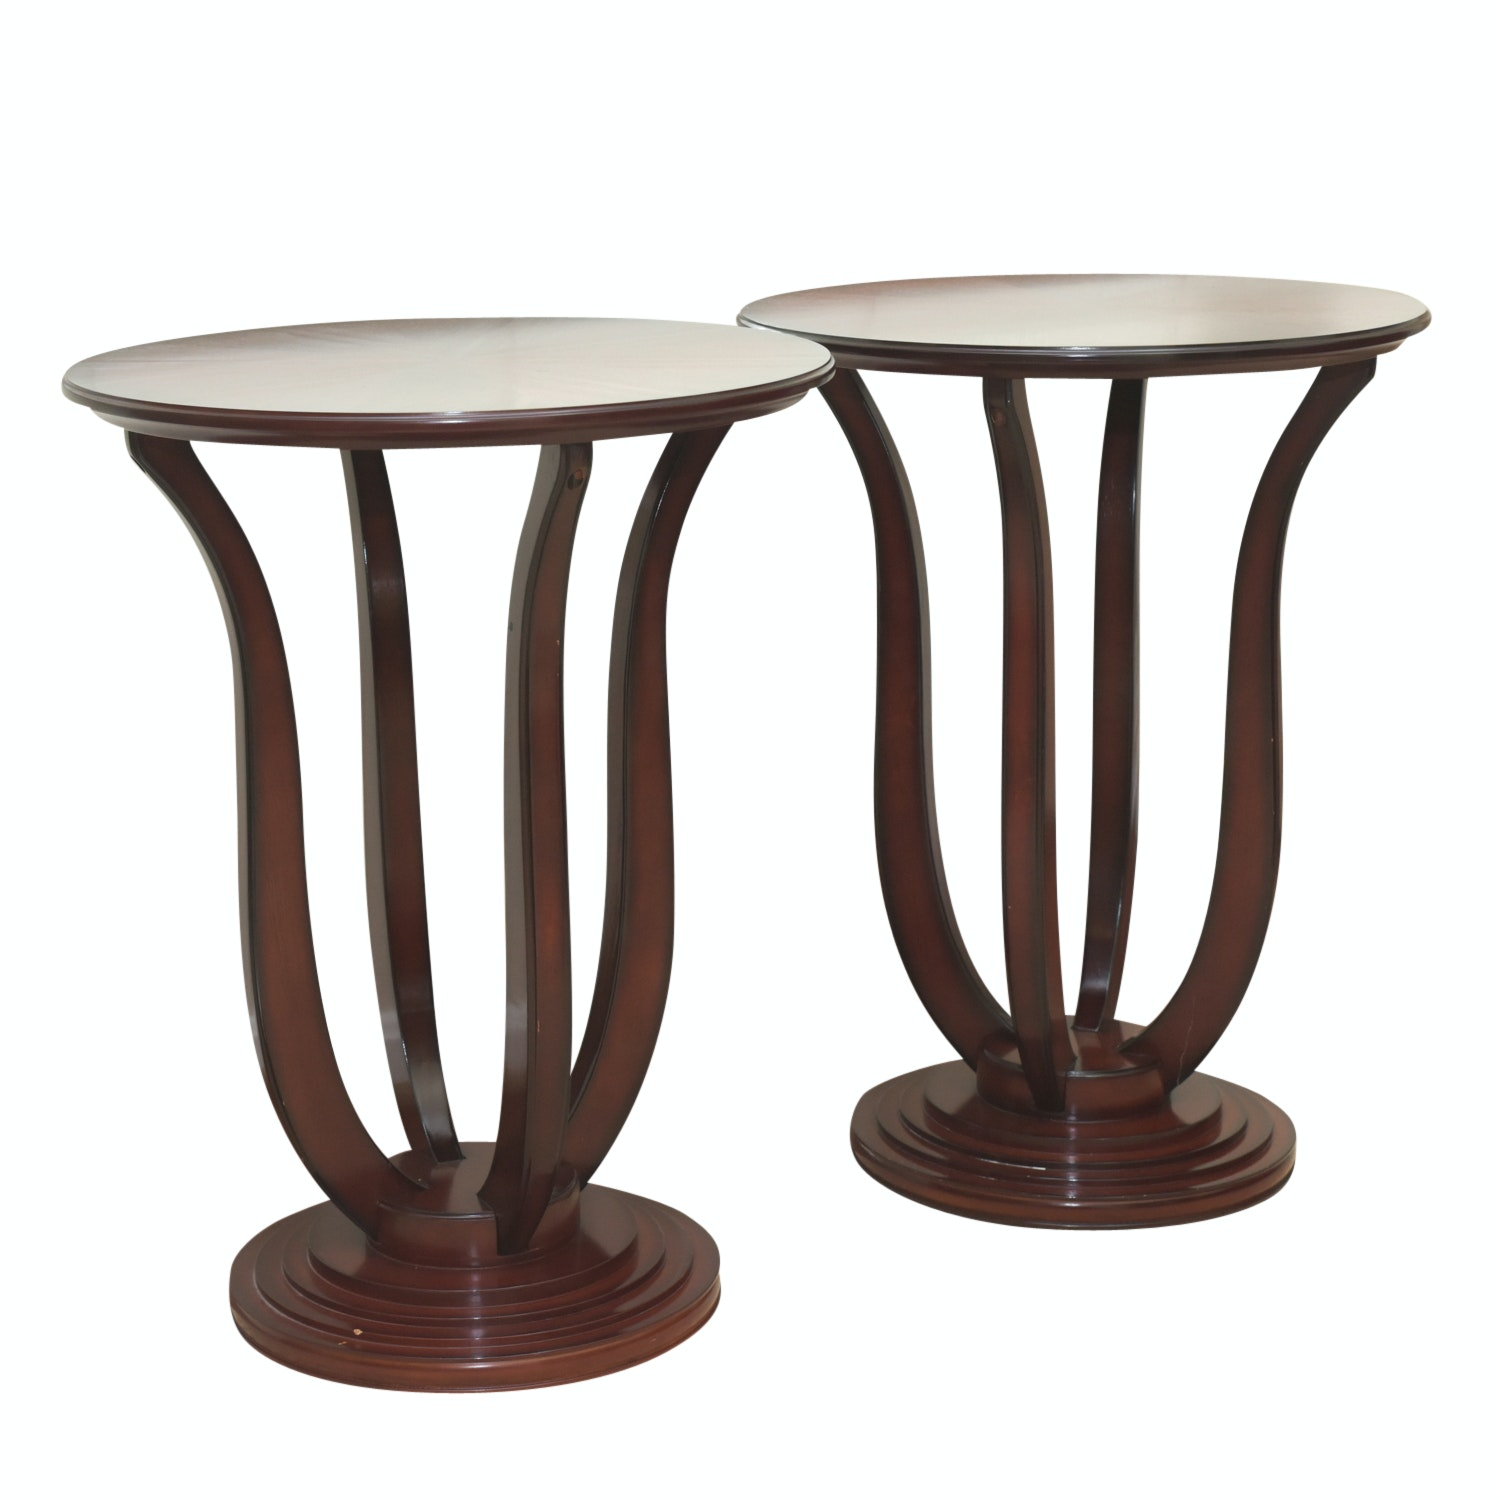 Bombay Company Contemporary Pedestal Side Tables